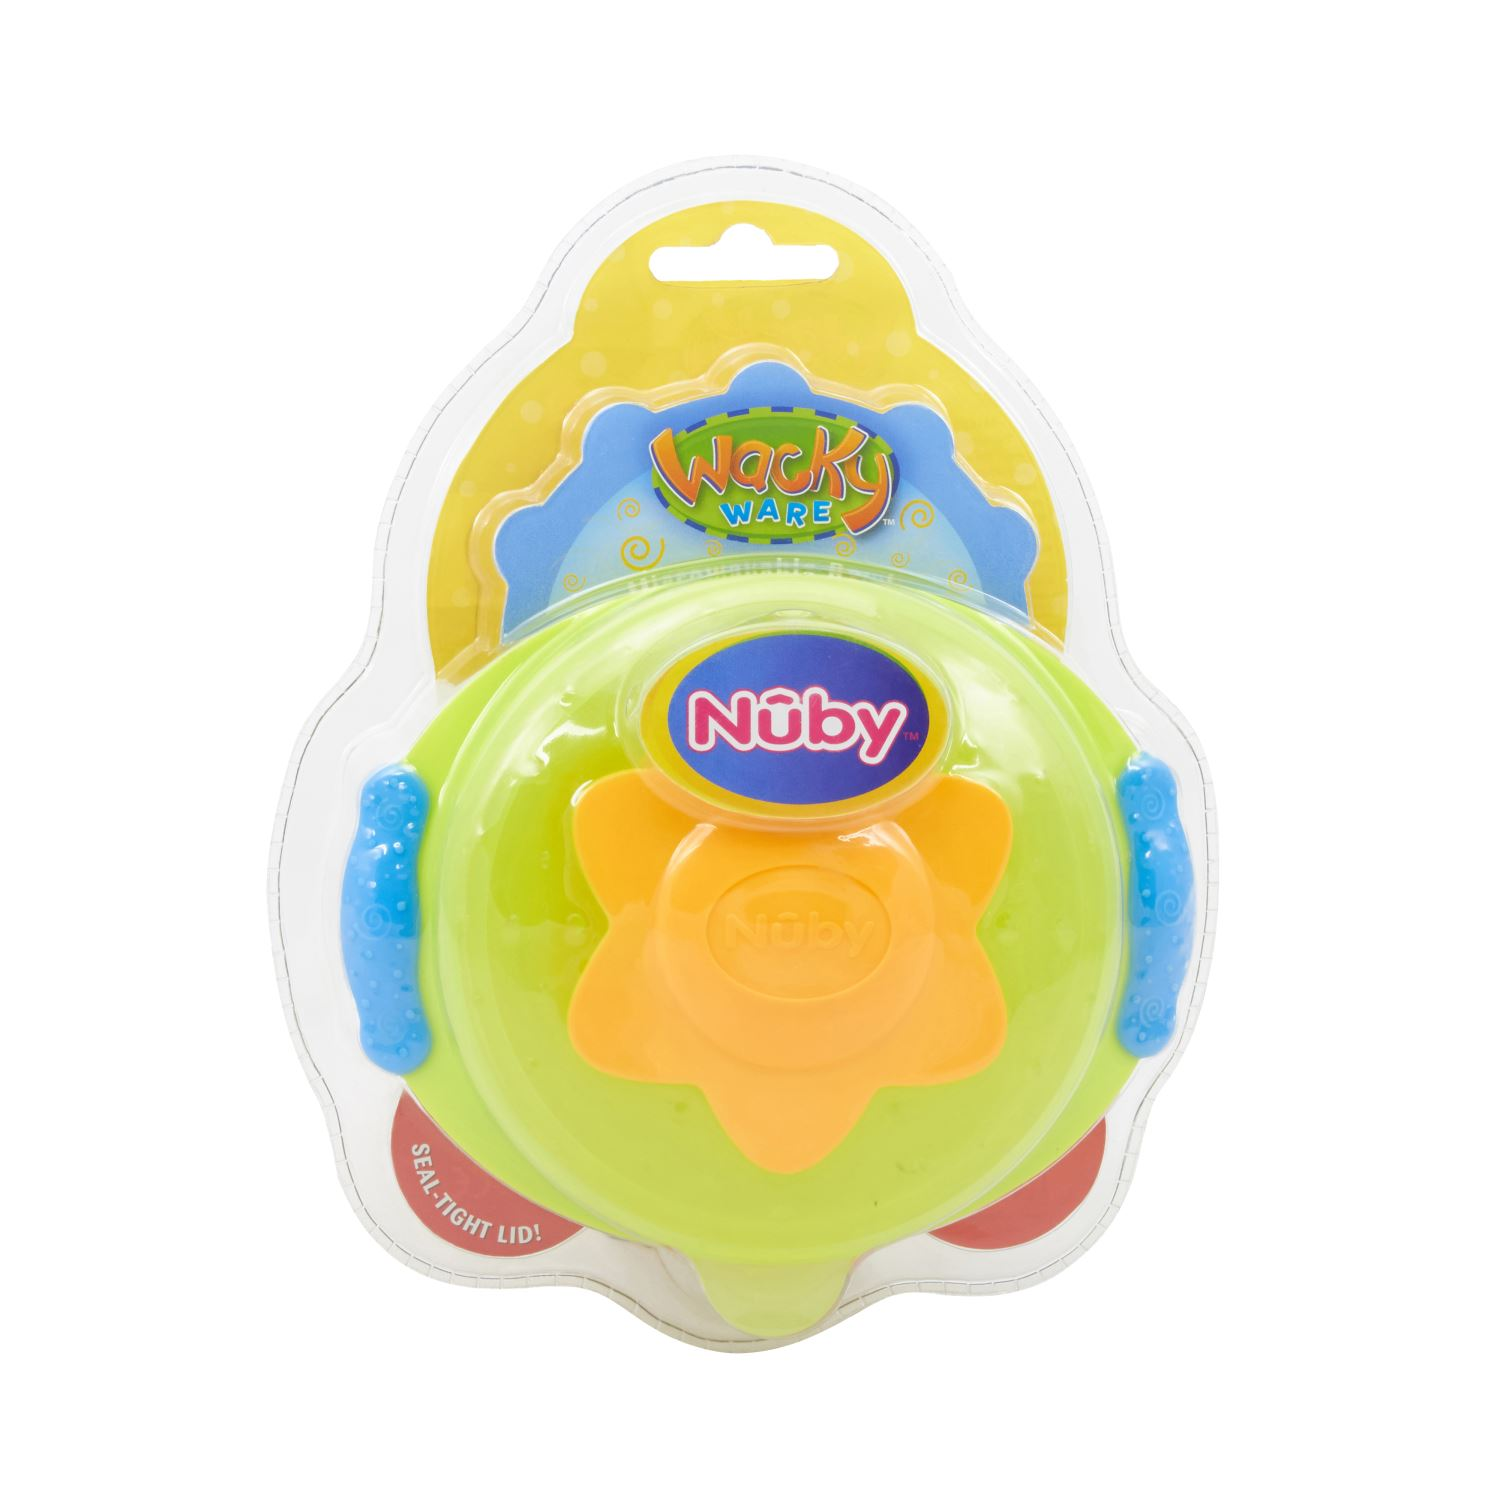 Nuby 5322 Suction Bowl